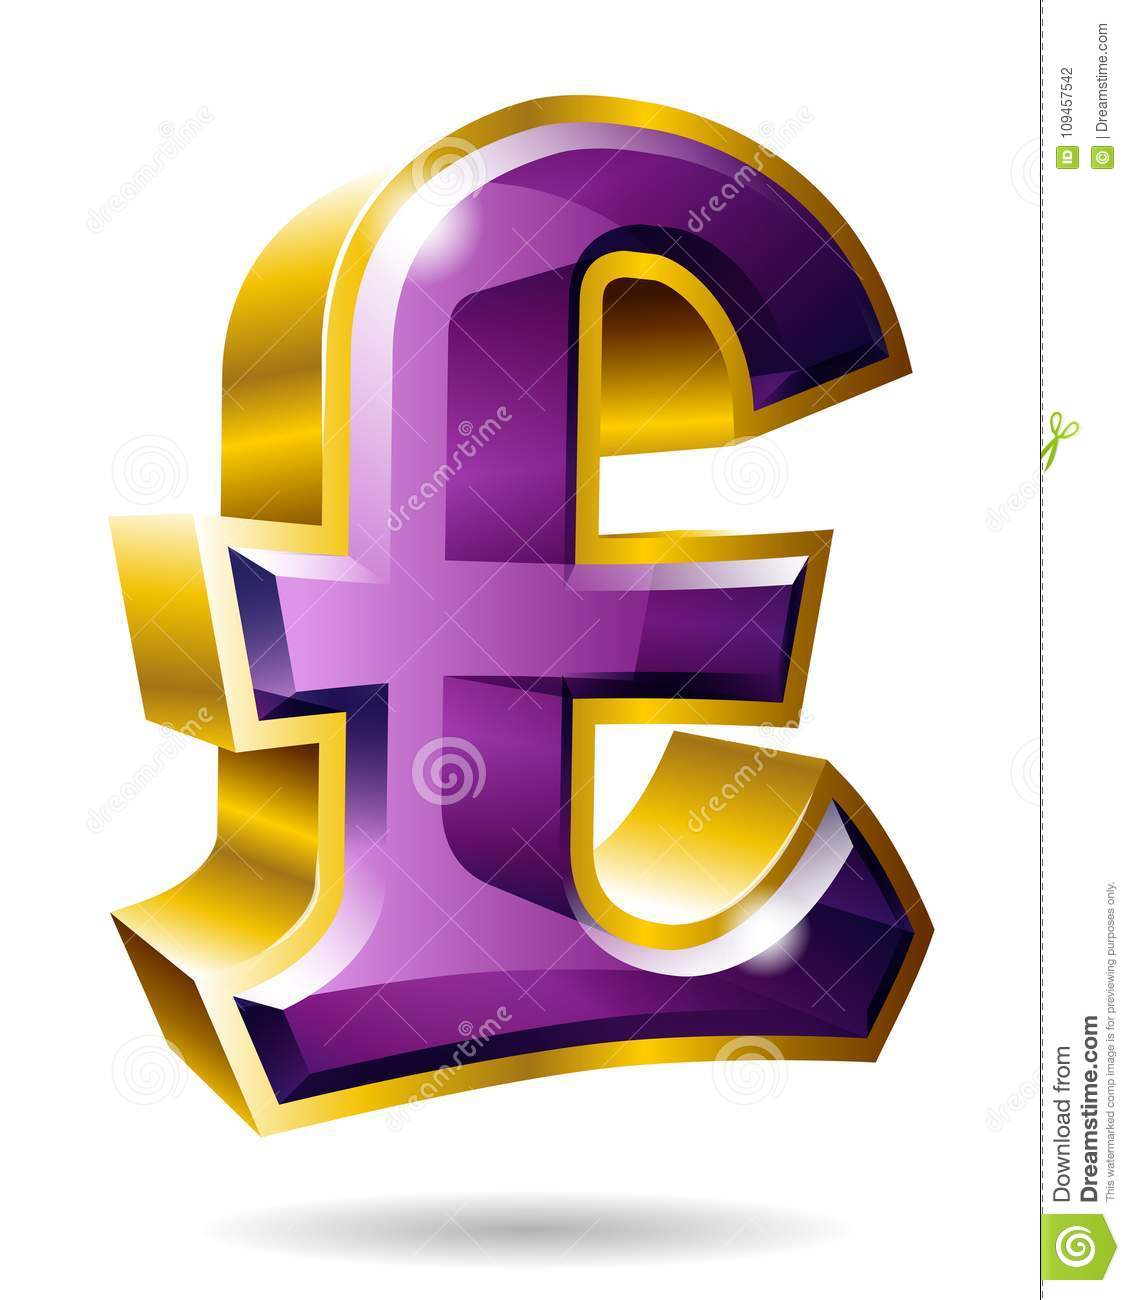 Golden Pound Sterling Symbol In 3d Style Isolated On White Backg